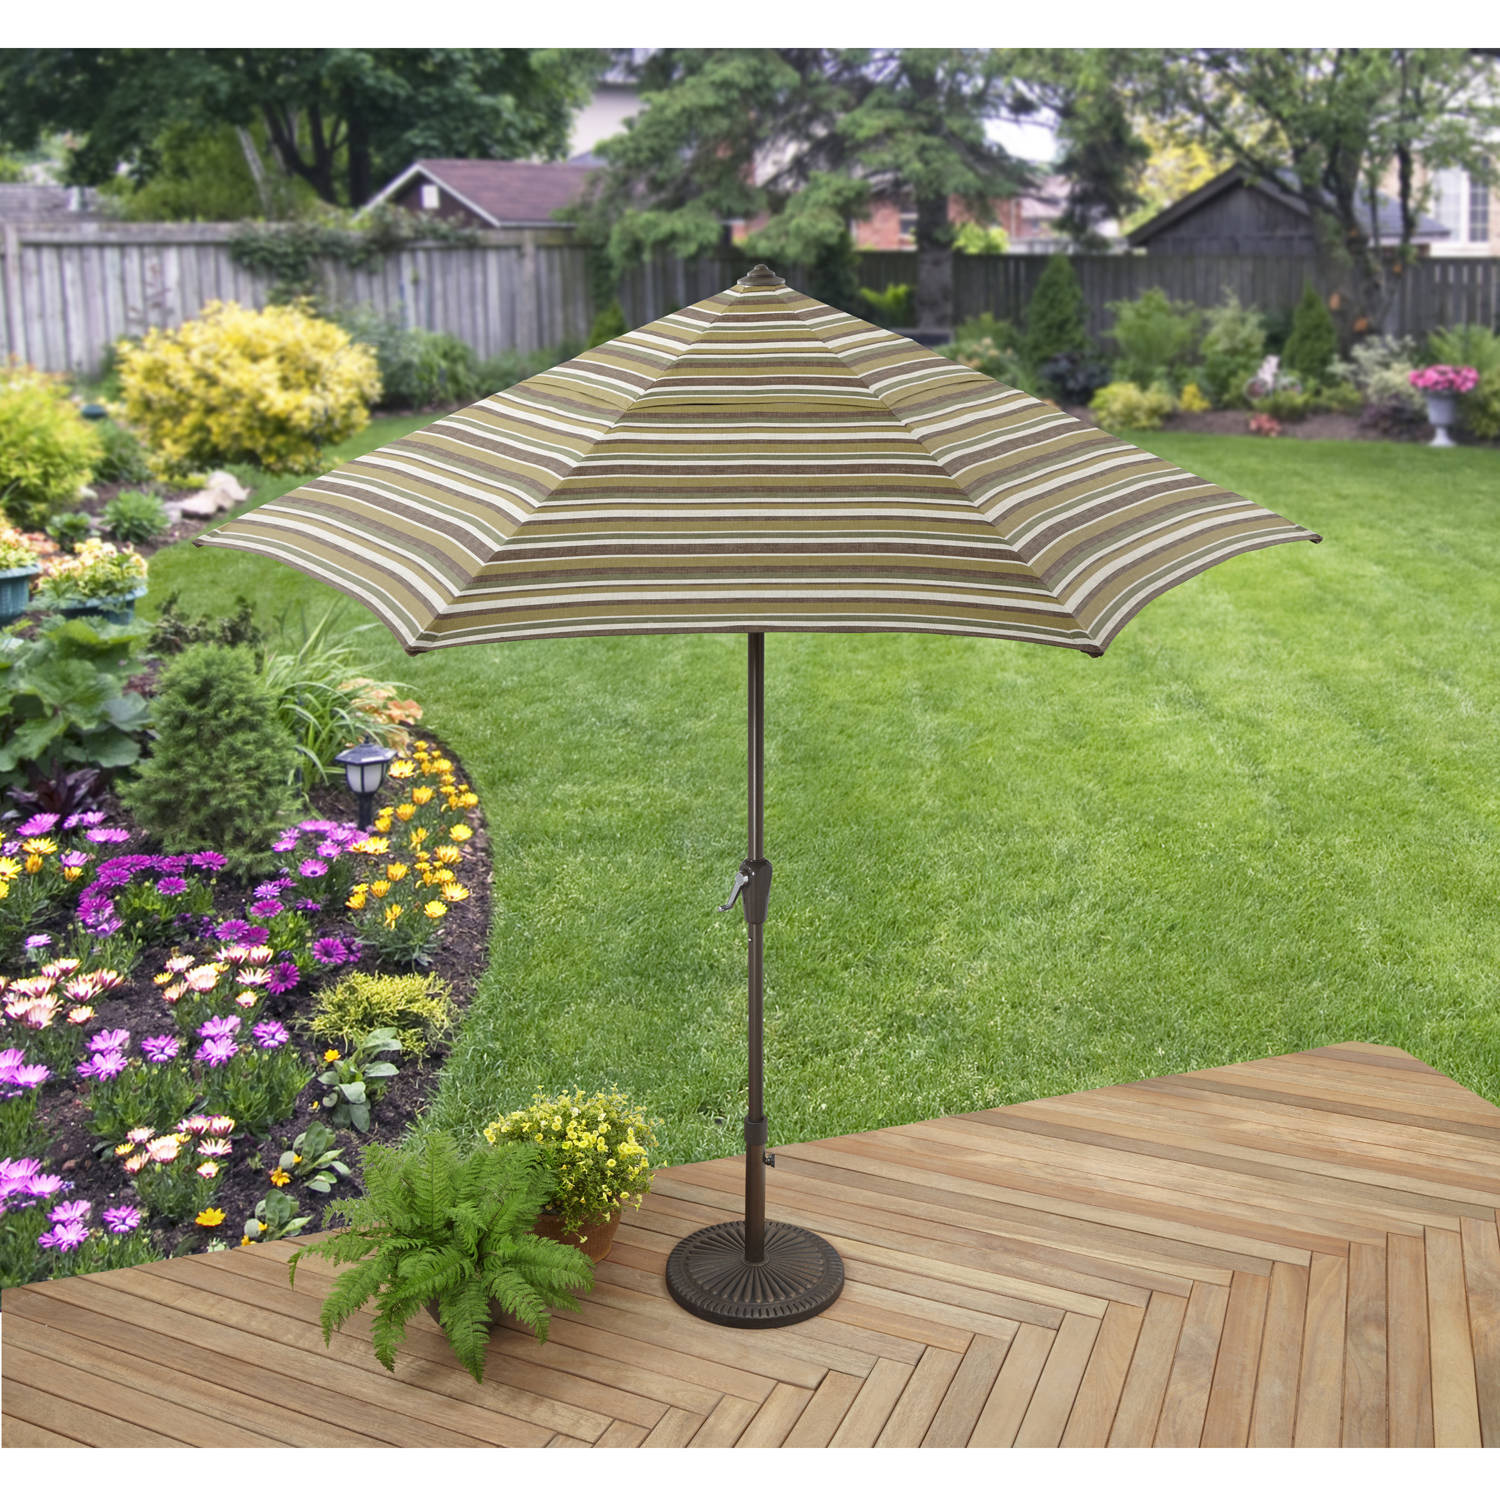 Better Homes and Gardens Sunrise Estates Umbrella, Beige by Hangzhou Jinshi Hardware Co., Ltd.